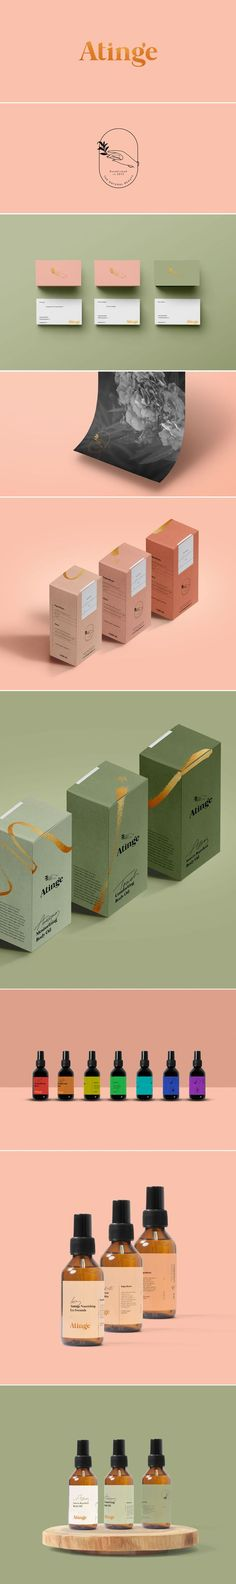 Sophisticated and charming branding for Atinge by Cocorrina: